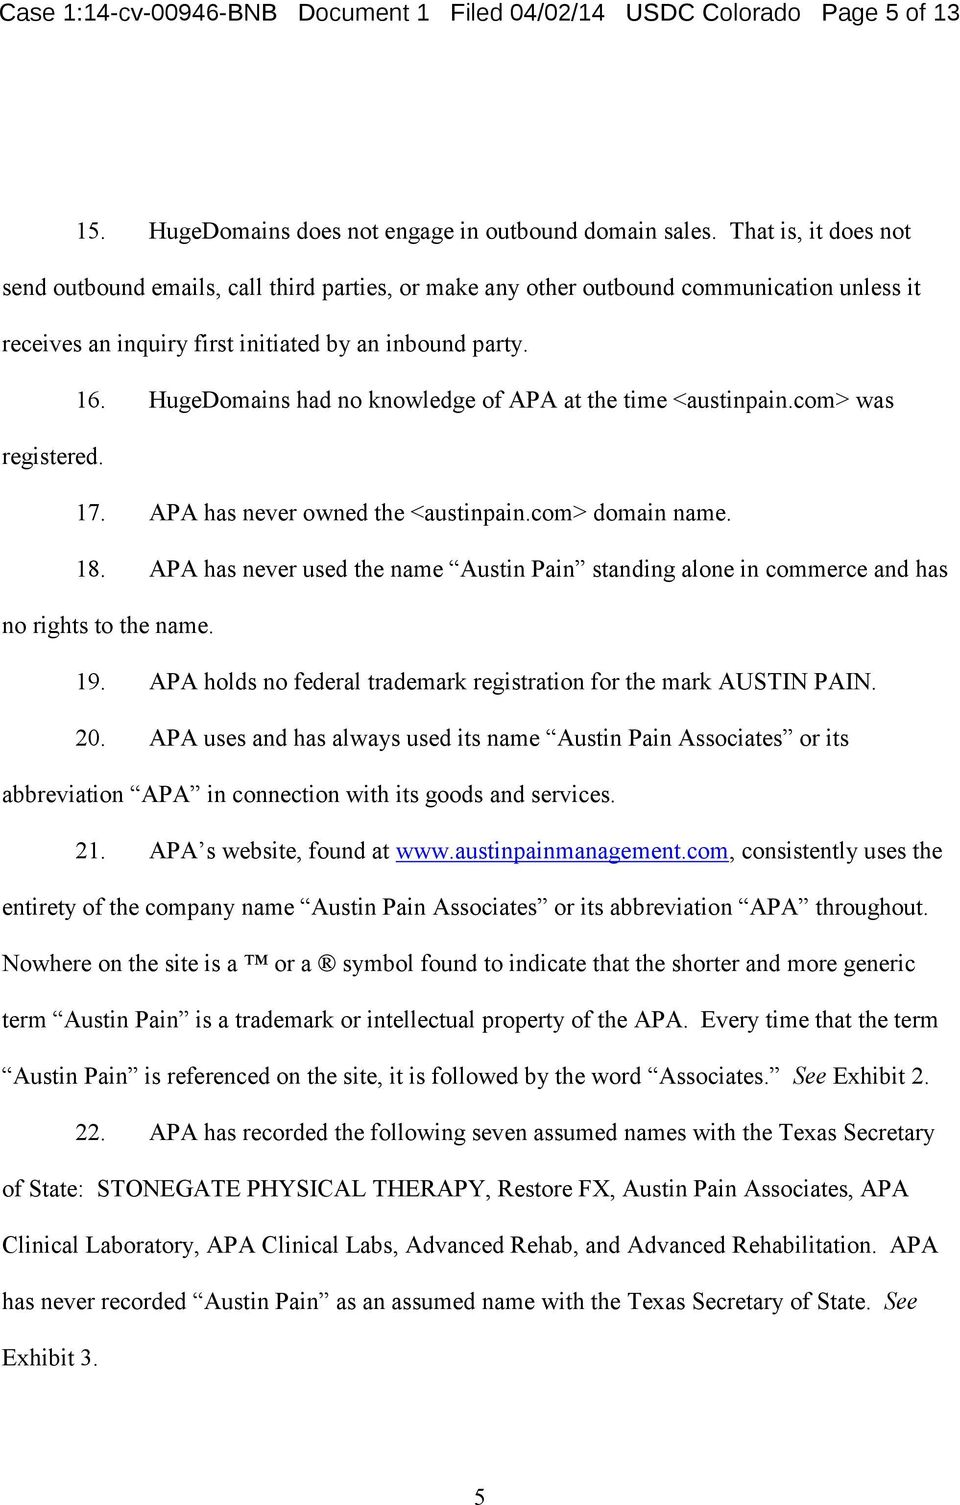 HugeDomains had no knowledge of APA at the time <austinpain.com> was registered. 17. APA has never owned the <austinpain.com> domain name. 18.